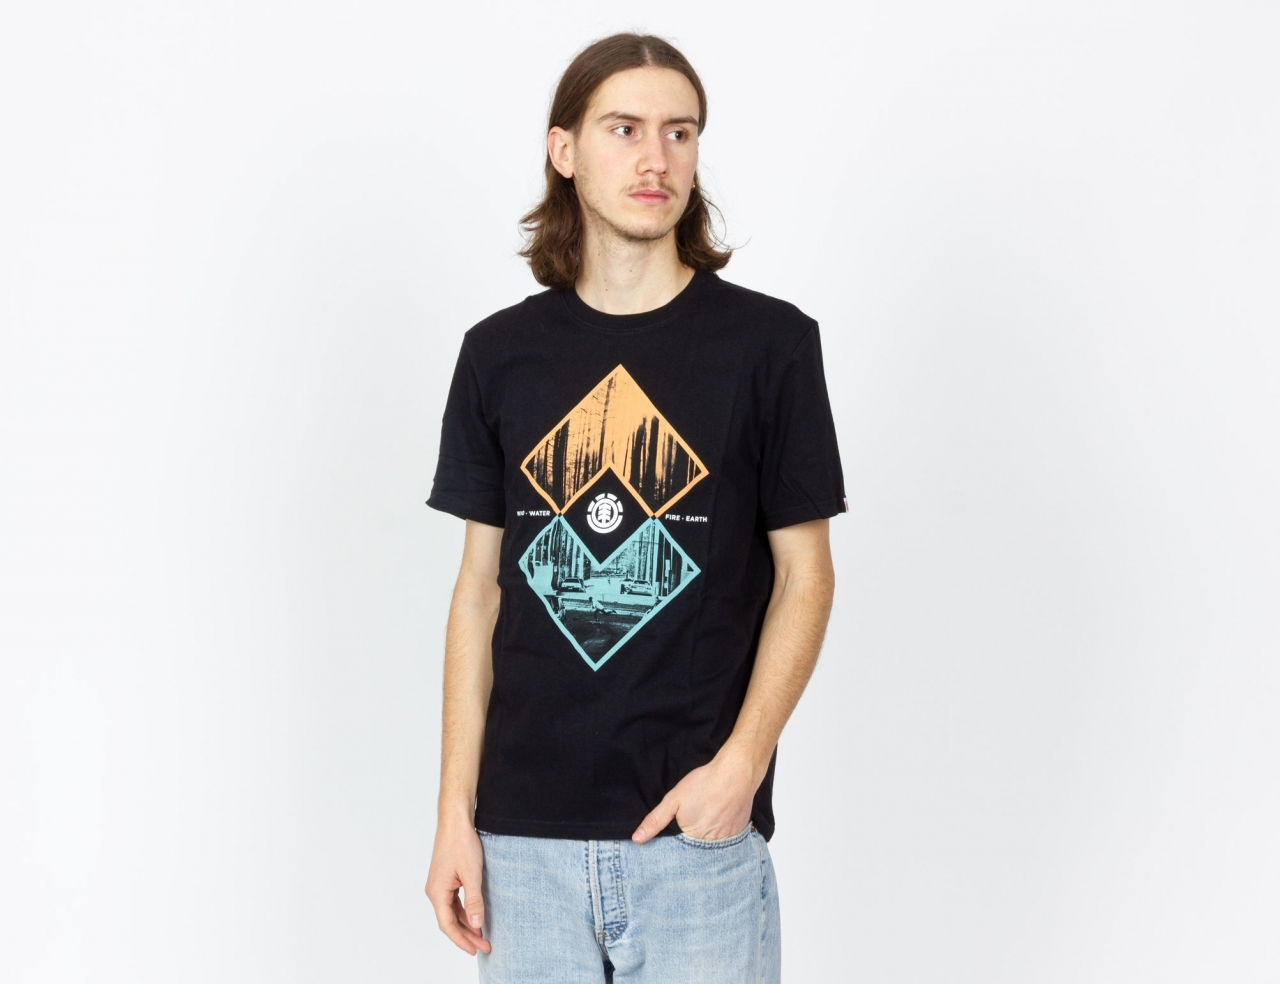 Element Intersects T-Shirt - Black